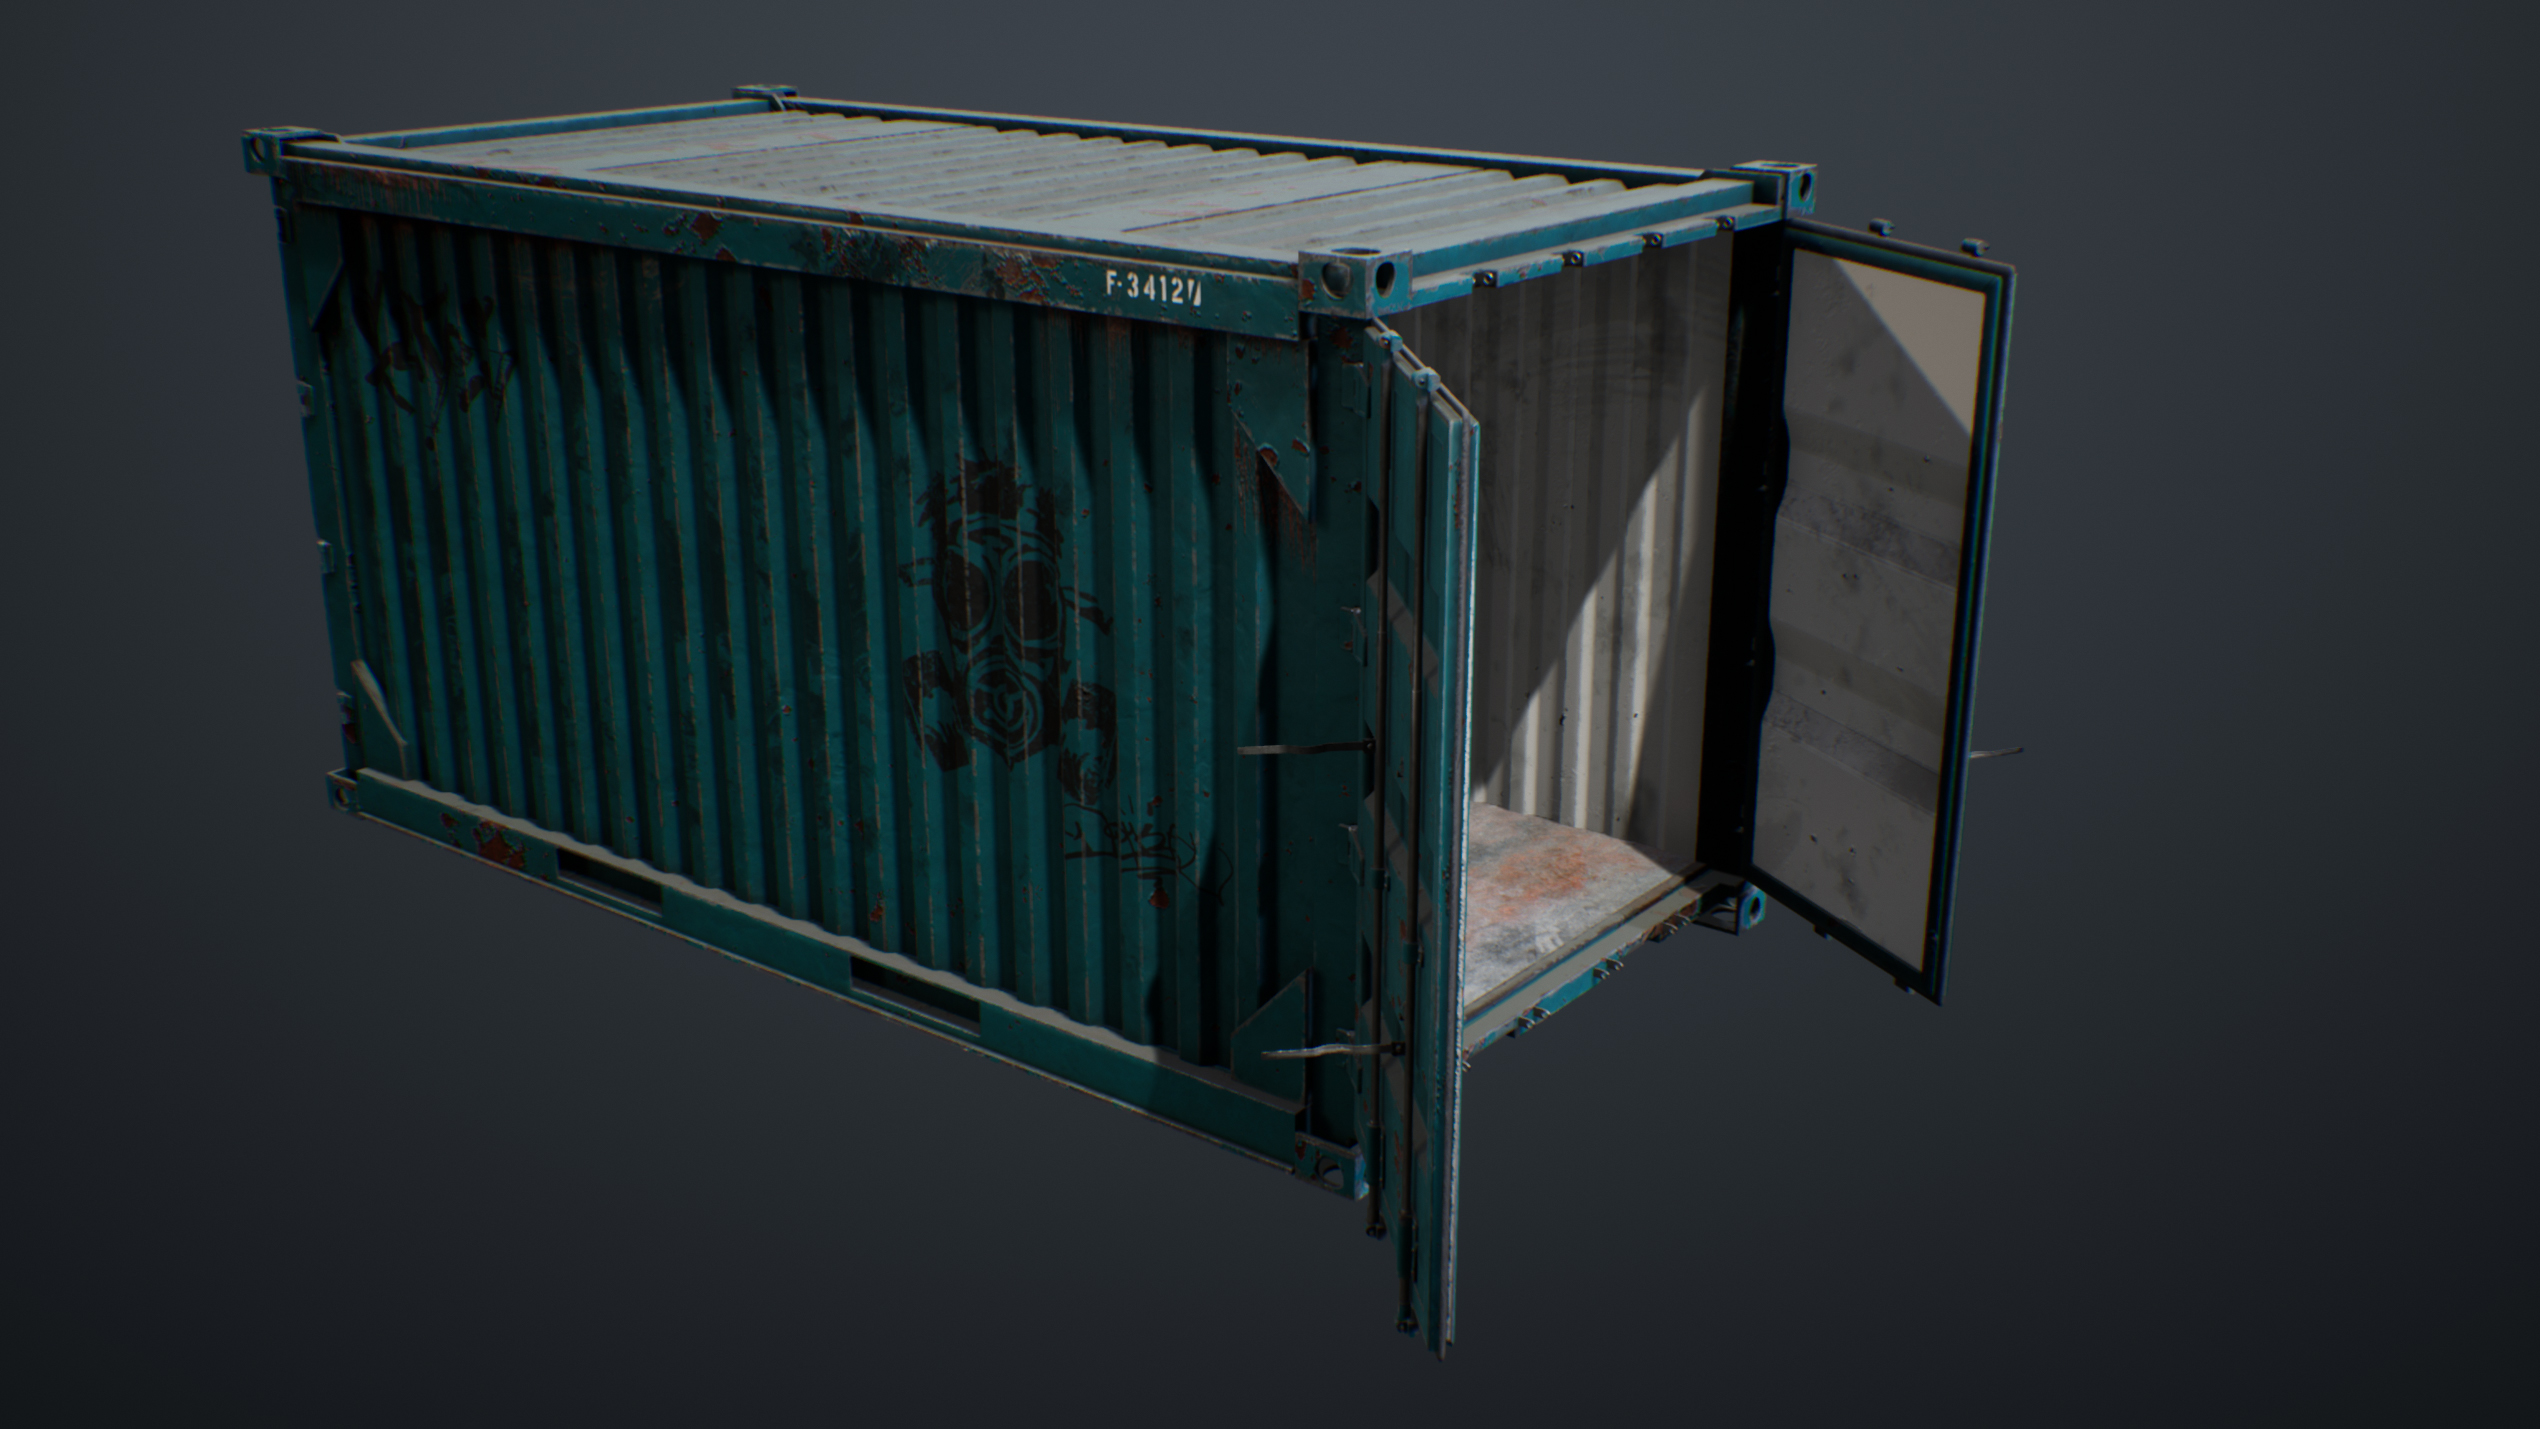 UE4 screenshot of the container top view